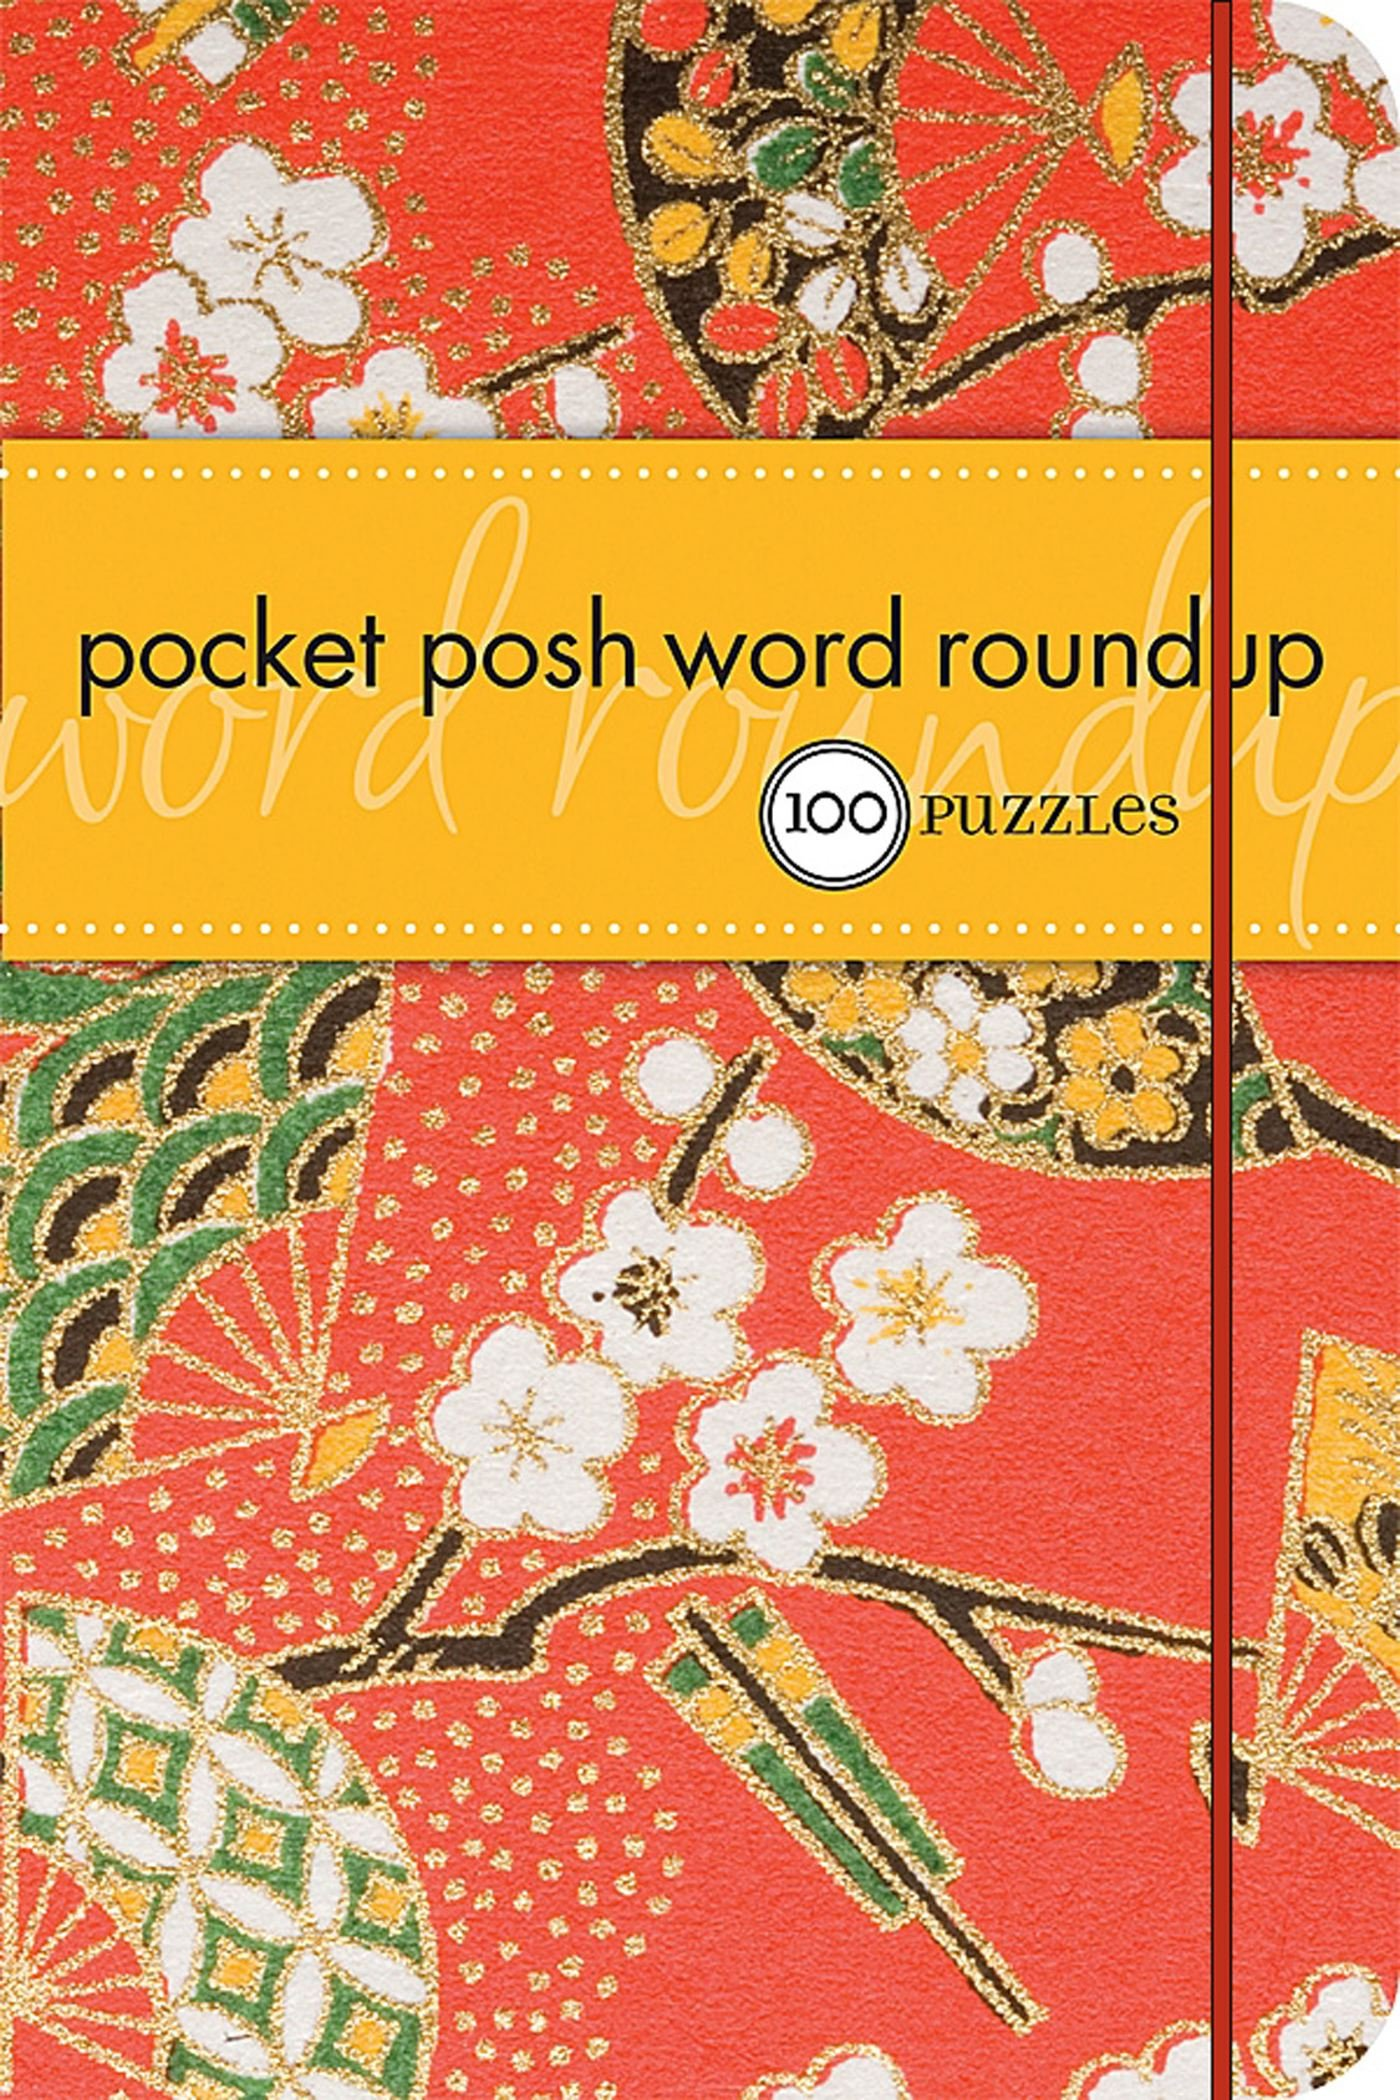 Pocket Posh Word Roundup: 100 Puzzles: The Puzzle Society: 9780740772757:  Amazon.com: Books